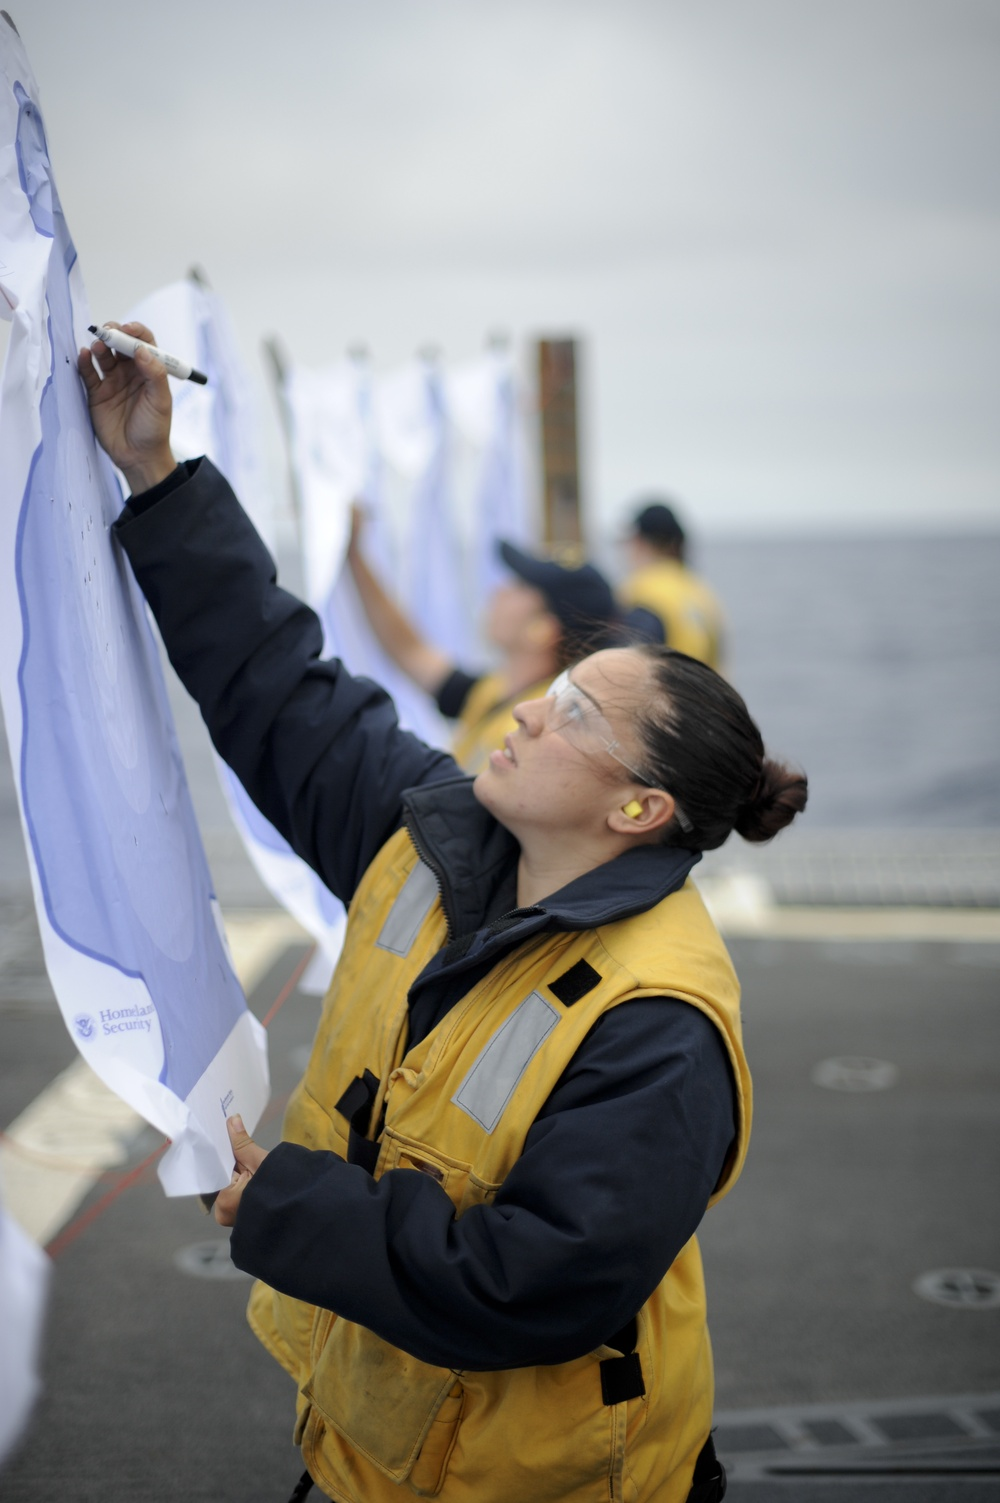 160815-N-LI612-334 PACIFIC OCEAN (August 15, 2016) Fire Controlman 2nd Class Maria Holbrook calculates points during a small arms gun shoot on the flight deck of the Arleigh Burke-class guided-missile destroyer USS Shoup (DDG 86) . Shoup is currently unde